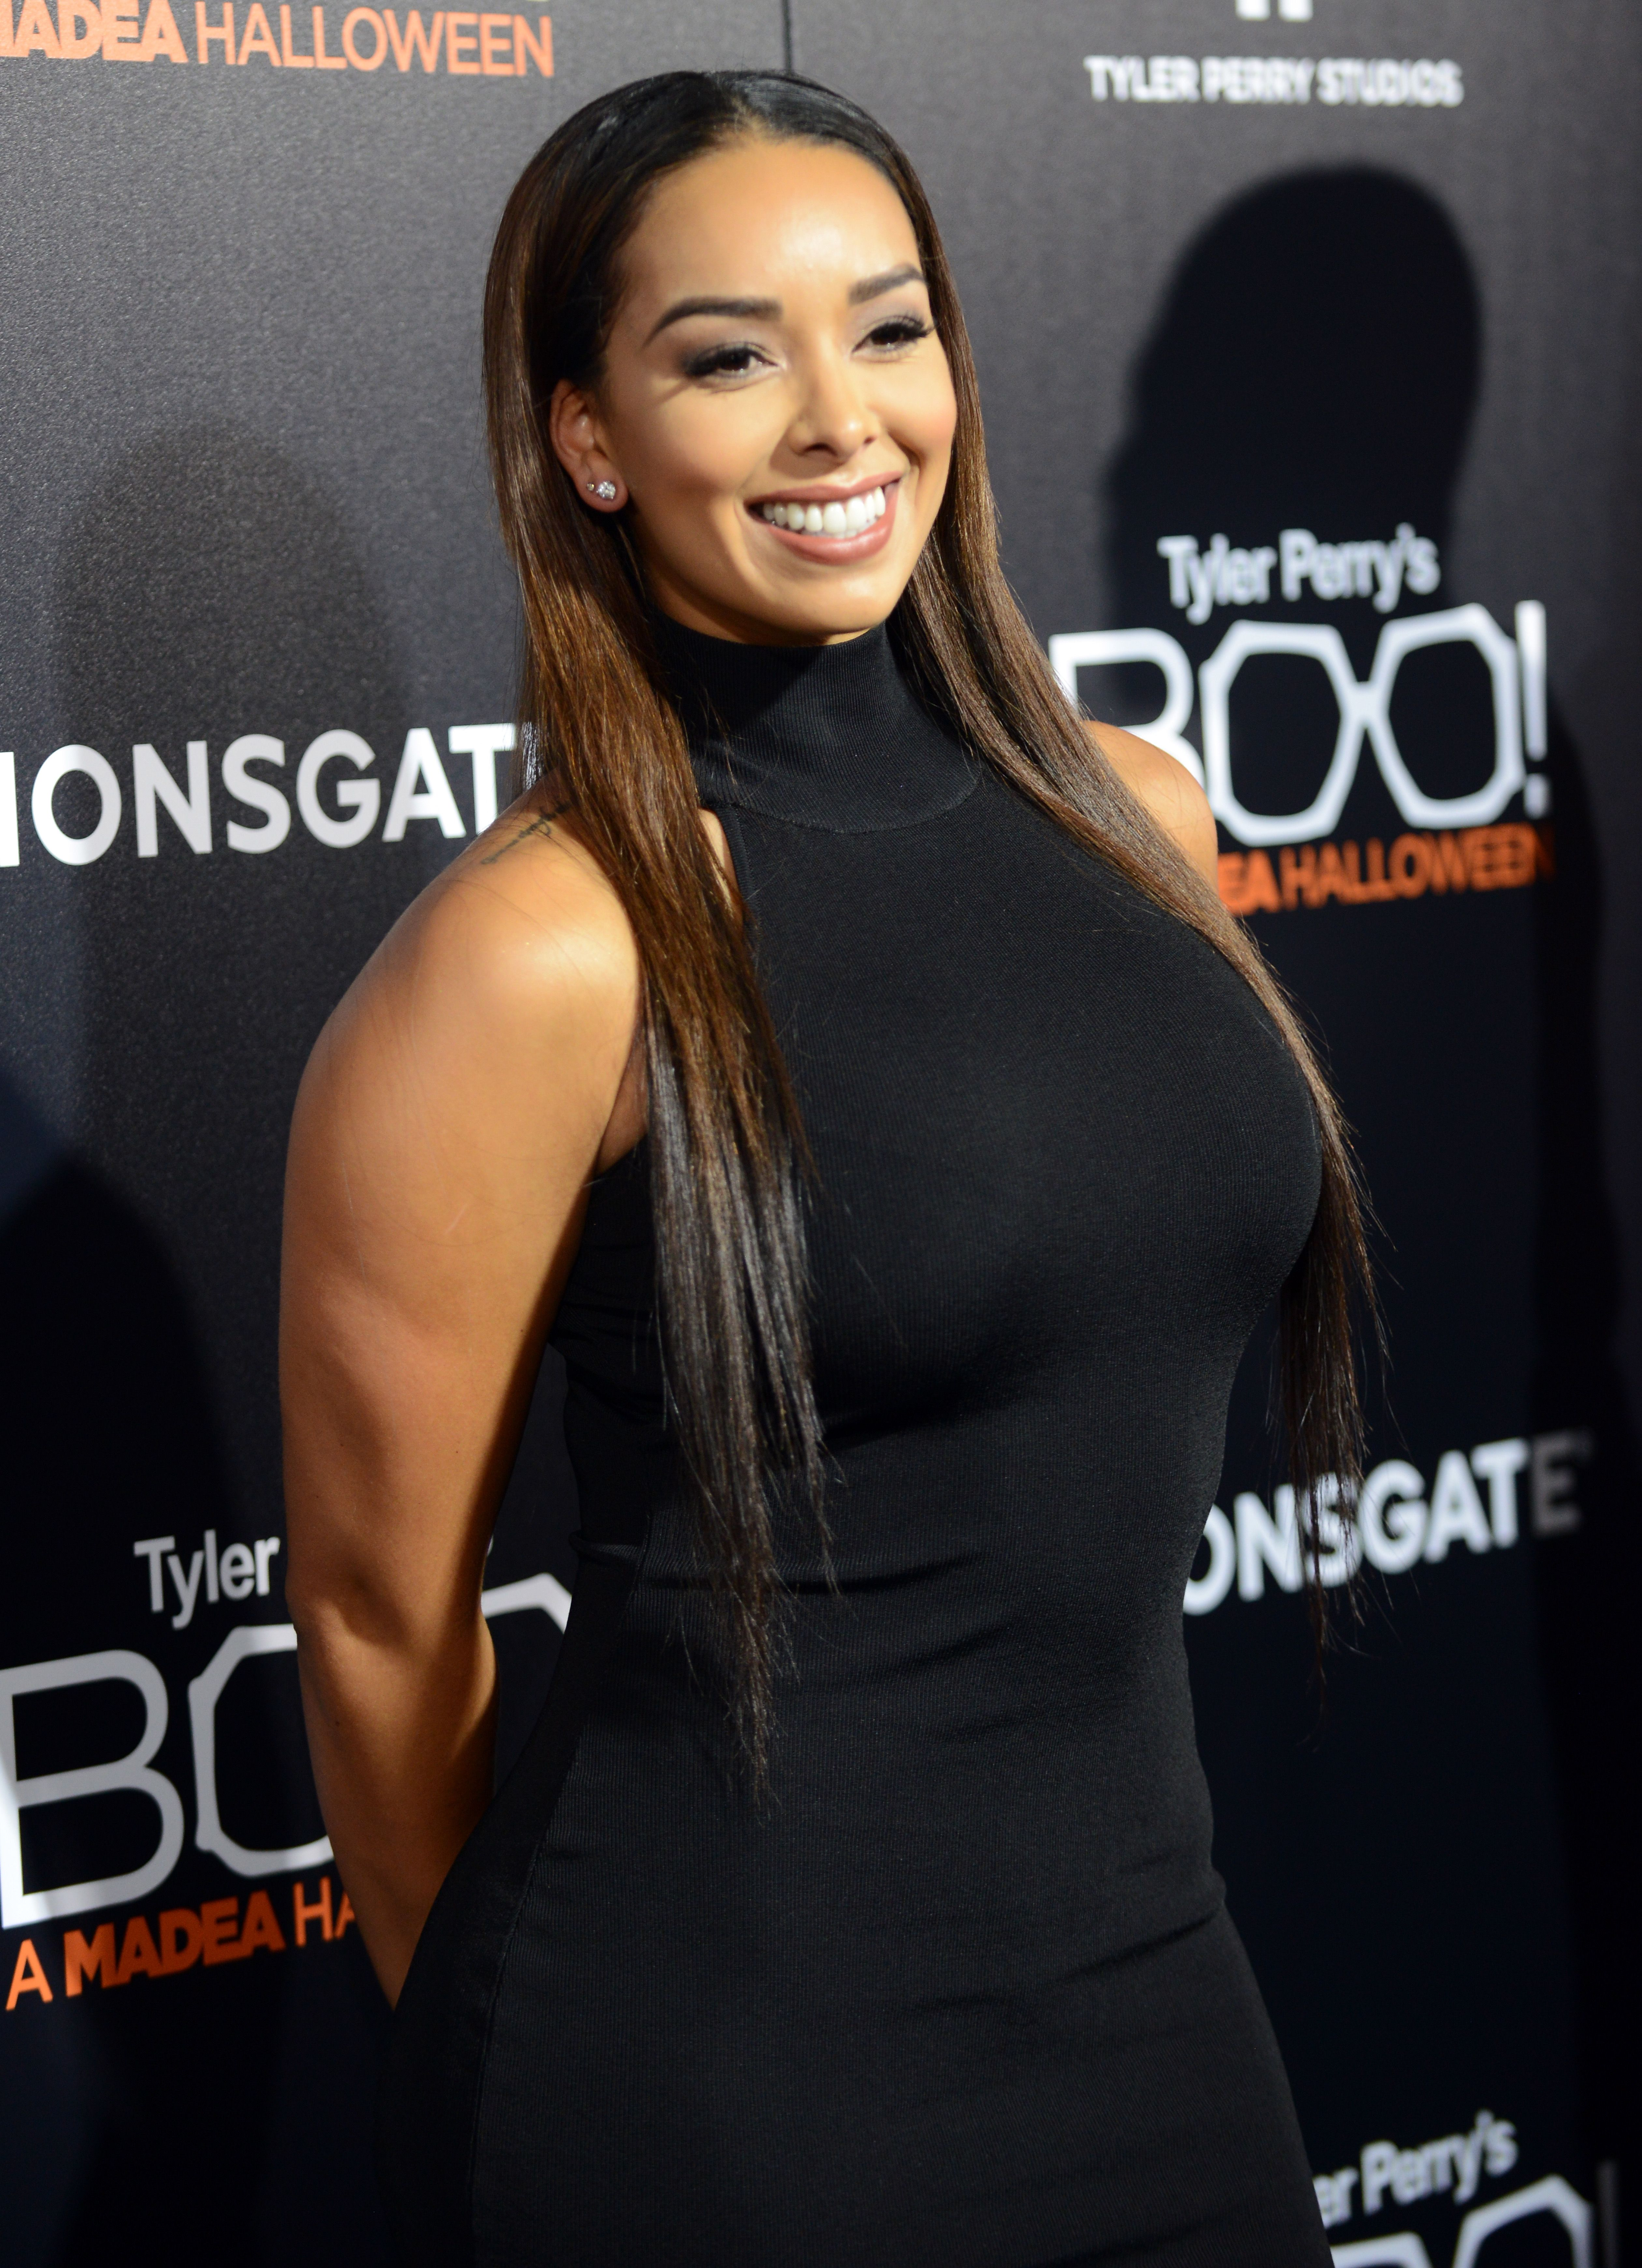 """Reality star Gloria Govan attends the premiere of Lionsgate's """"Boo! A Madea Halloween"""" held at ArcLight Cinemas Cinerama Dome in October 2016 in Hollywood, California. 